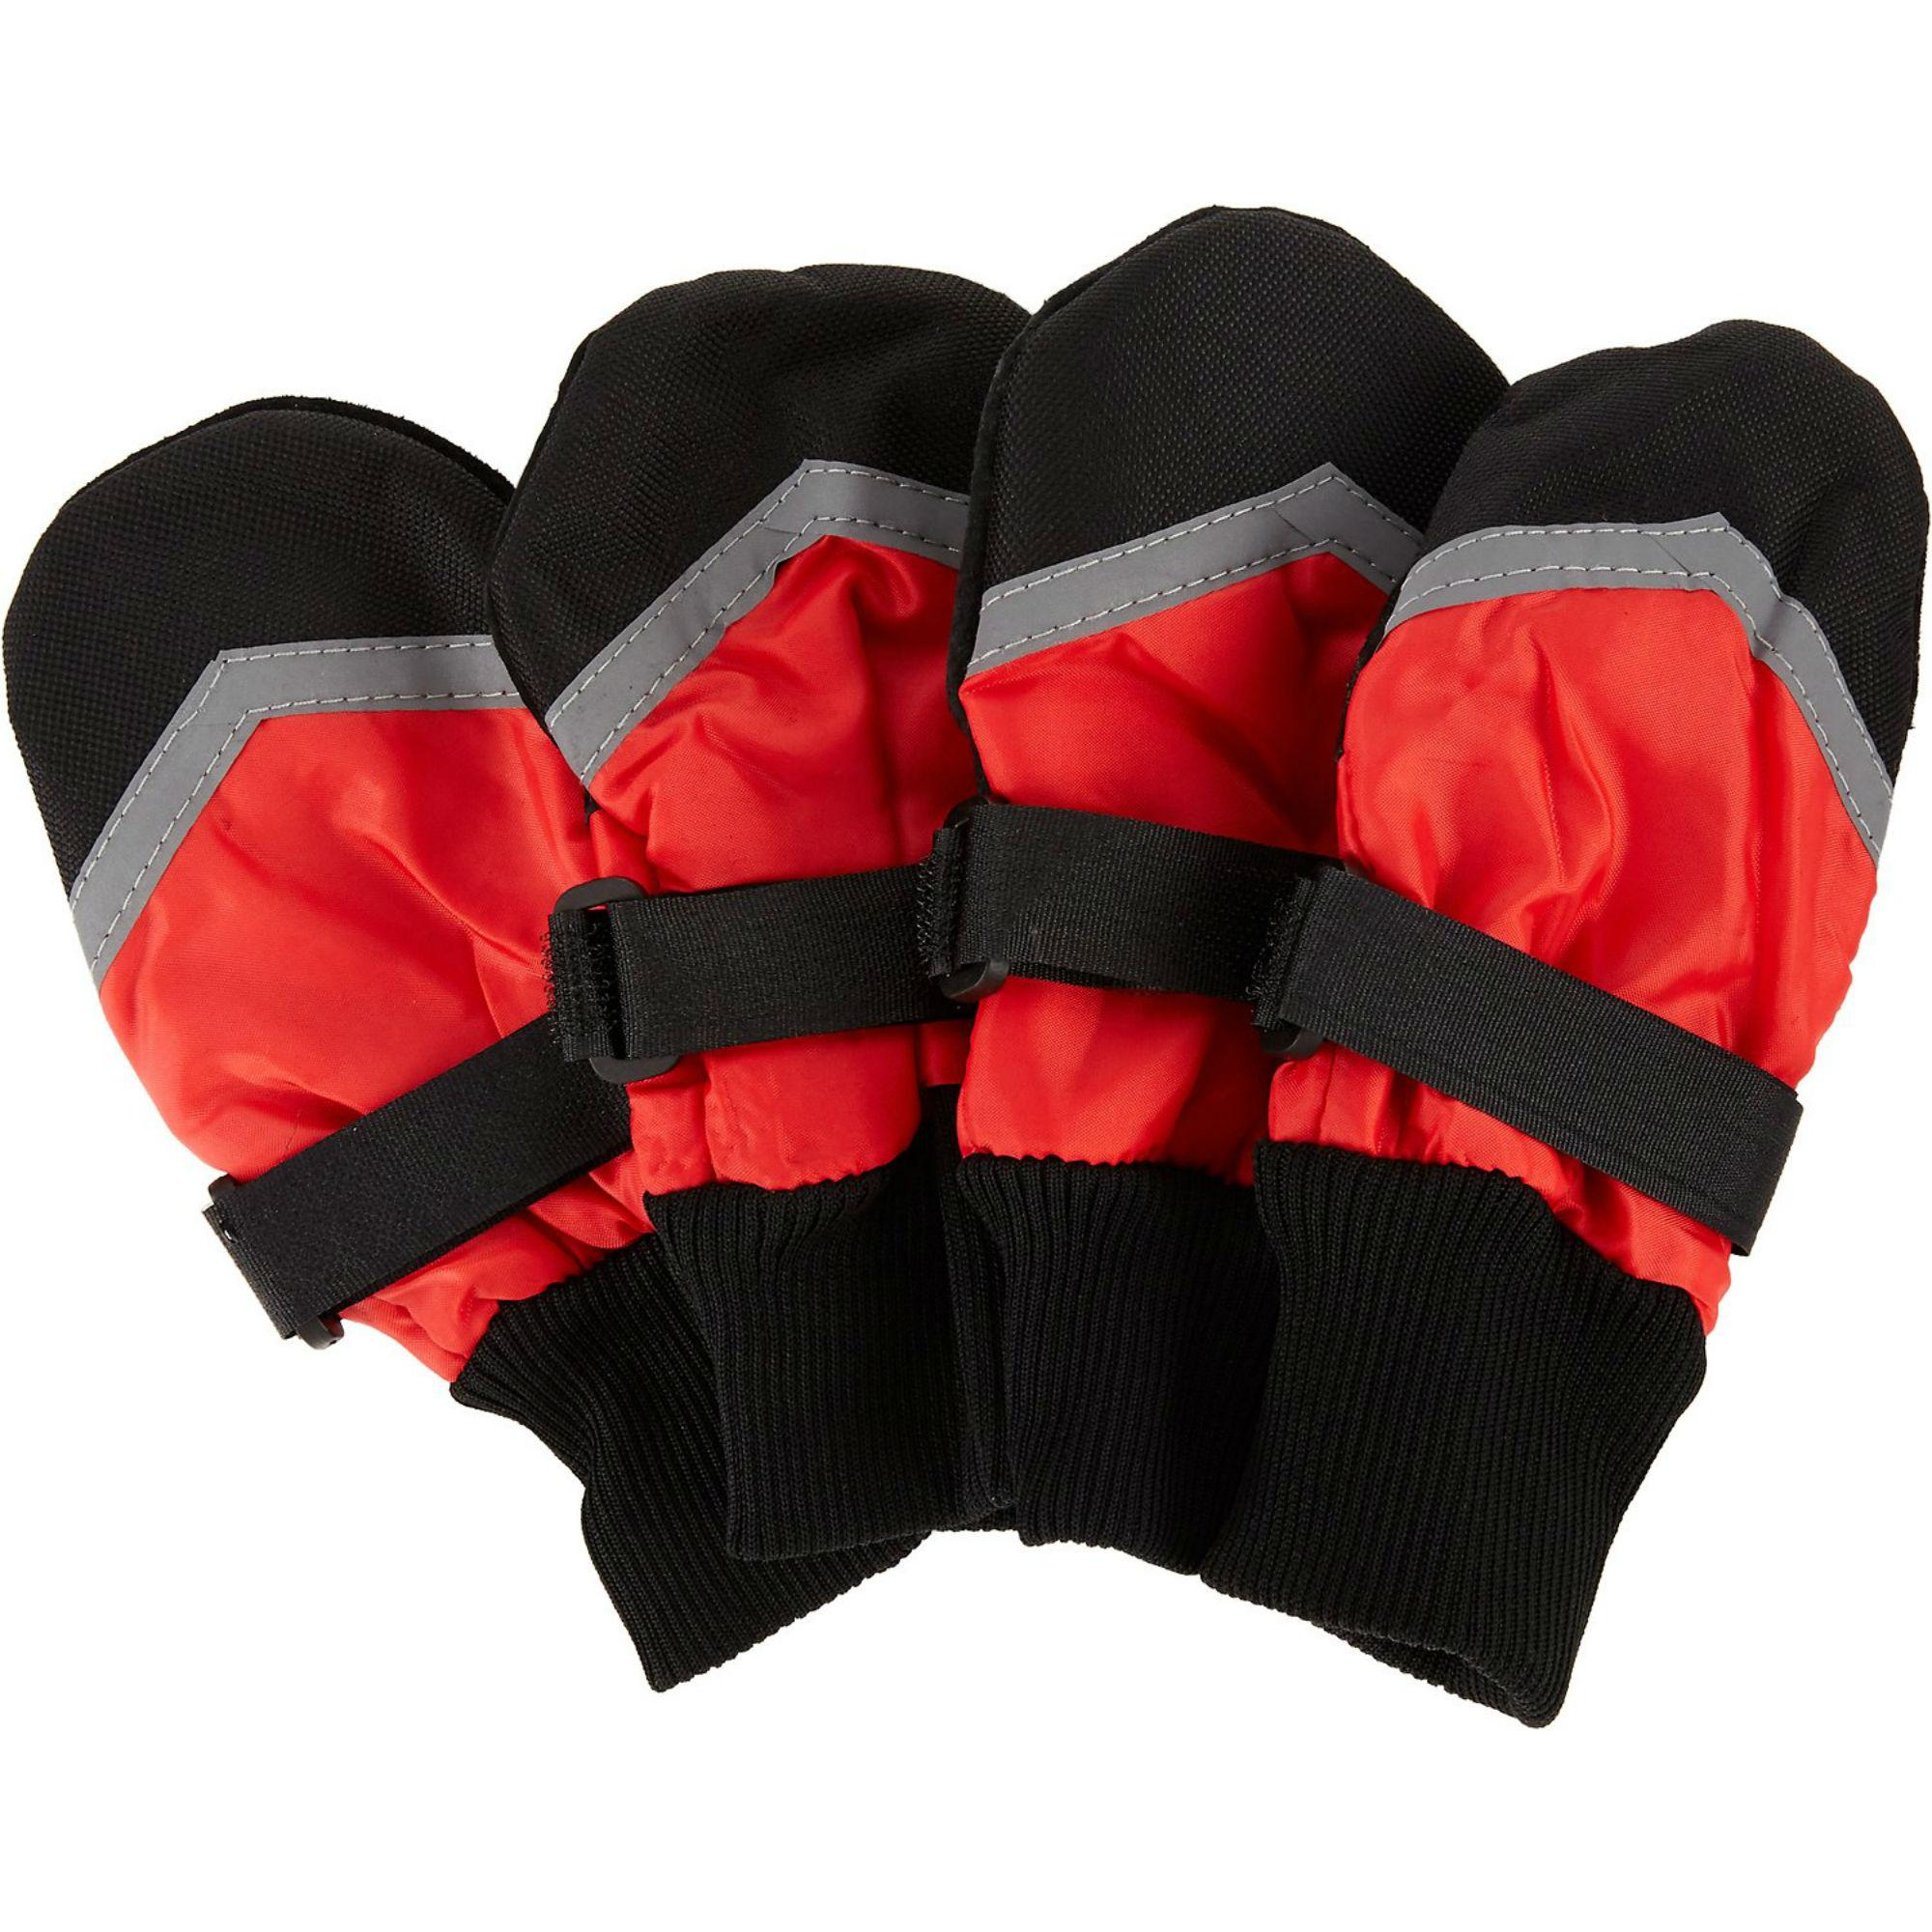 Fashion Pet Extreme All-Weather Dog Boots - Red